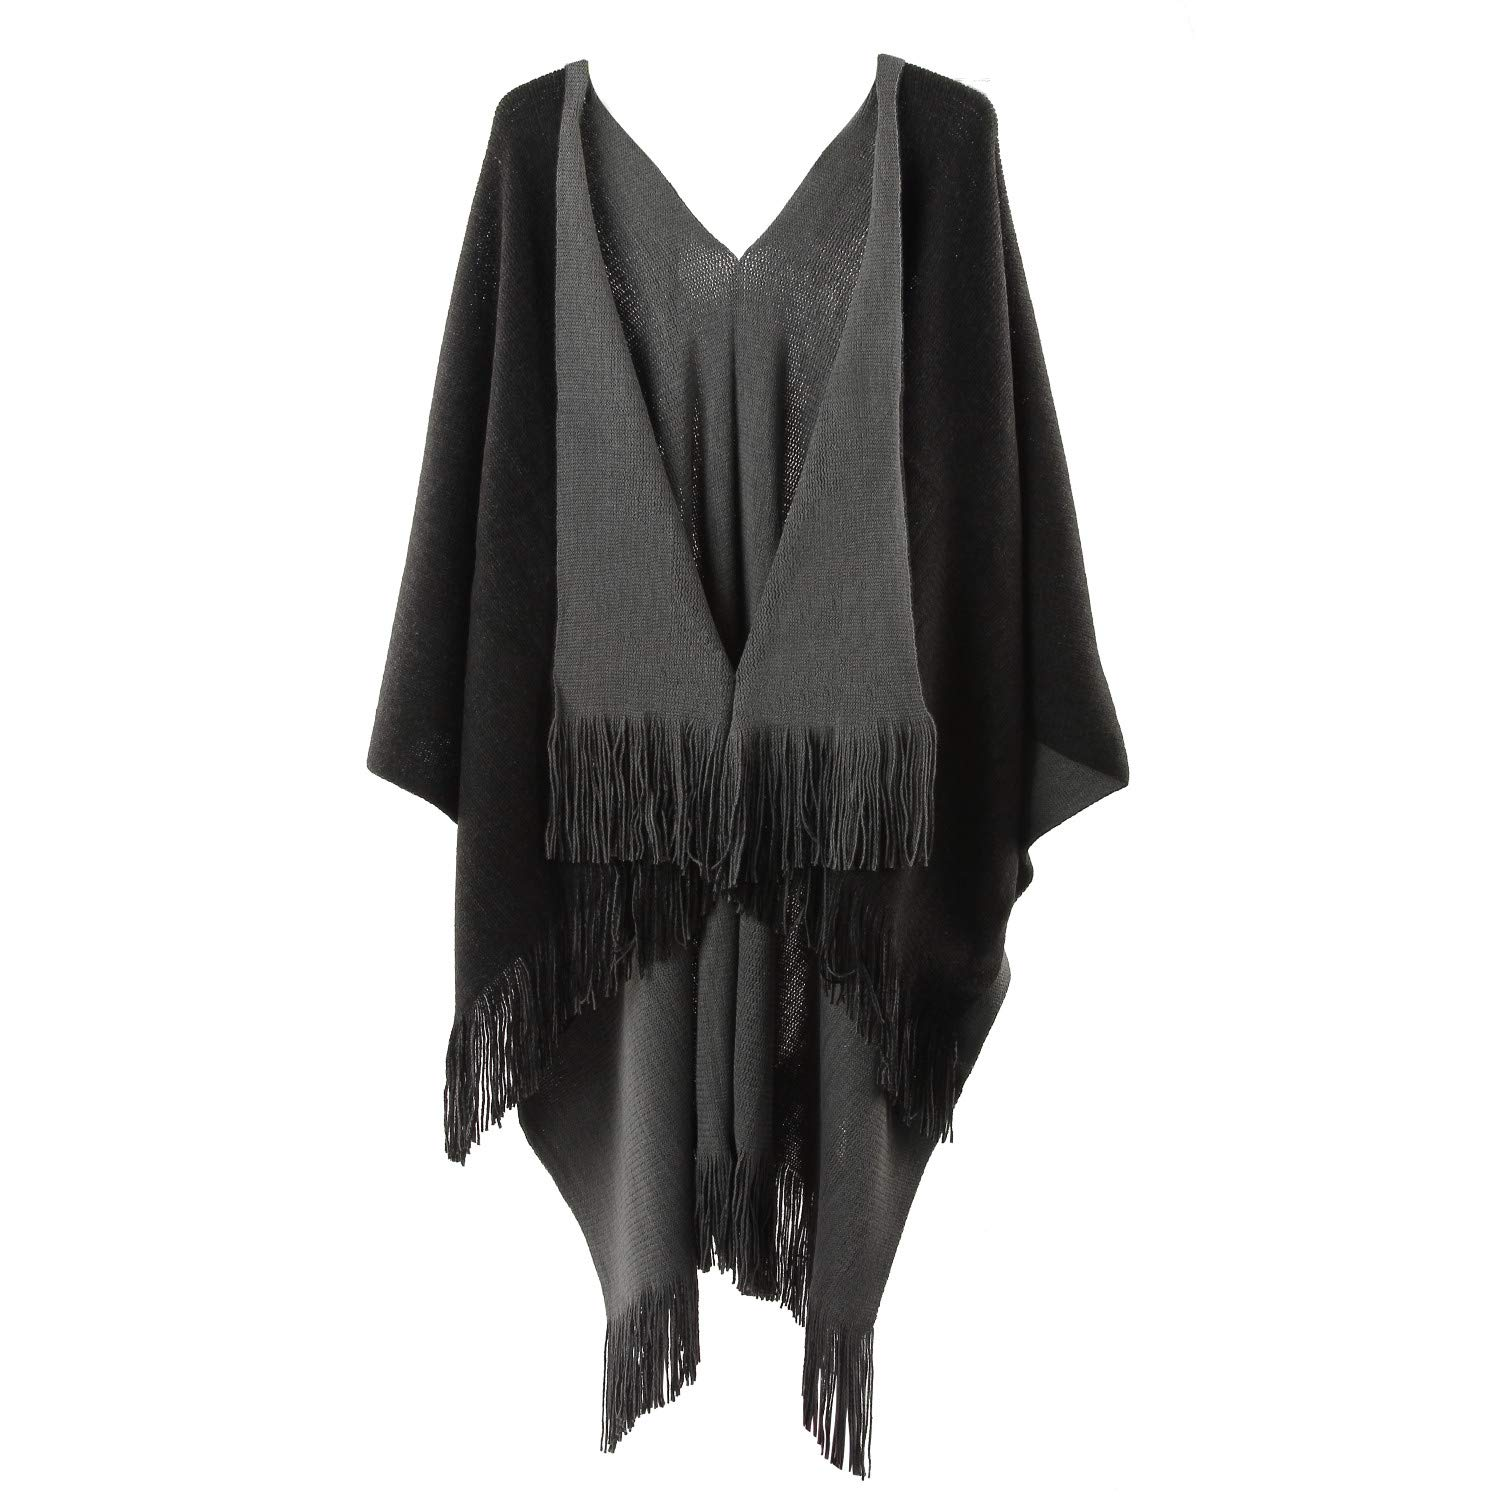 Womens Two Sided Shawl Poncho Cape Pashmina Shawl/Blanket Cape Beach Cover Ups Plus Size,Black and Grey,One Size